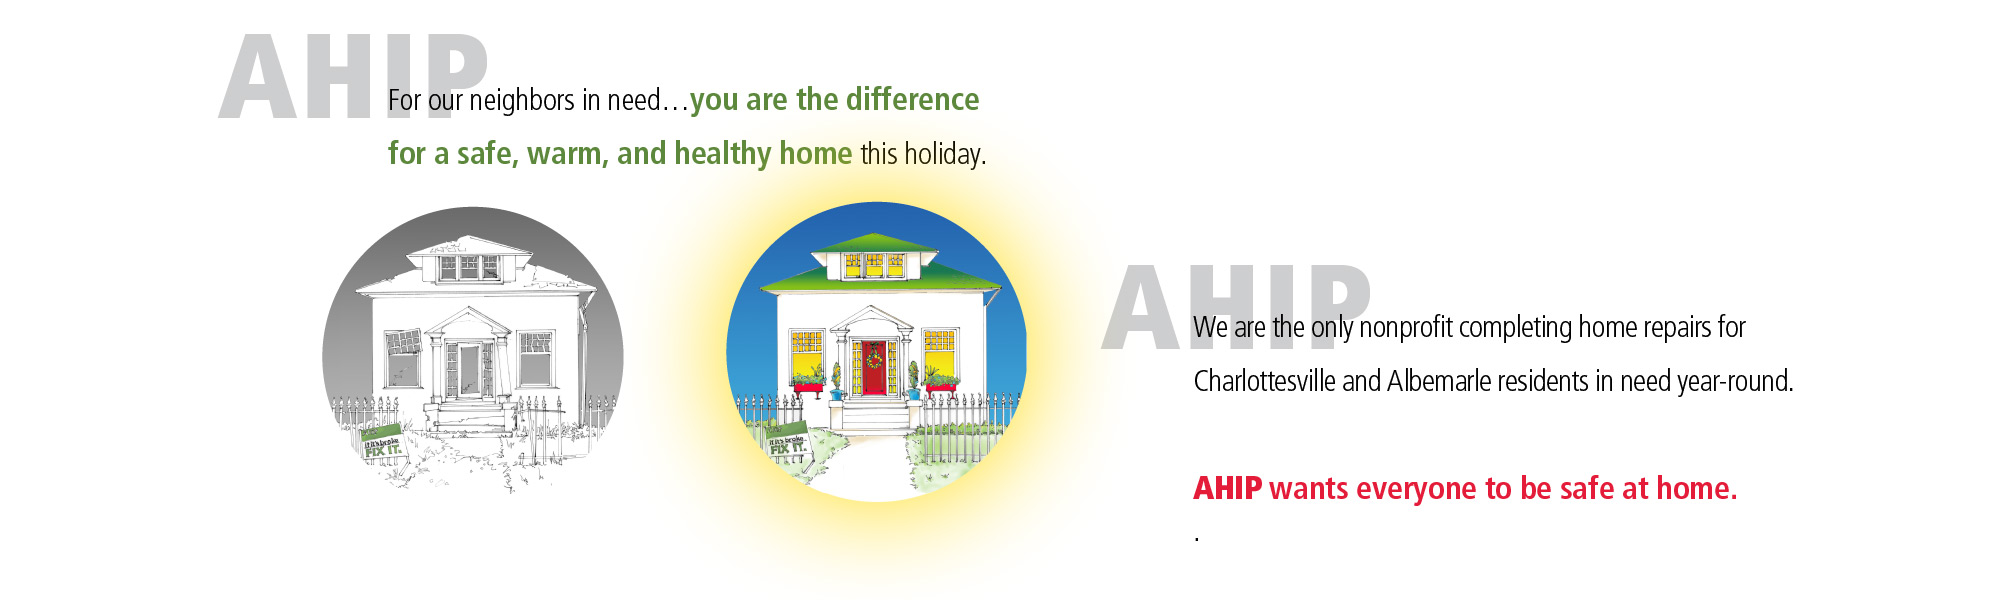 Support AHIP Holiday Campaign to Keep Repair Services Strong for Neighbors in Need